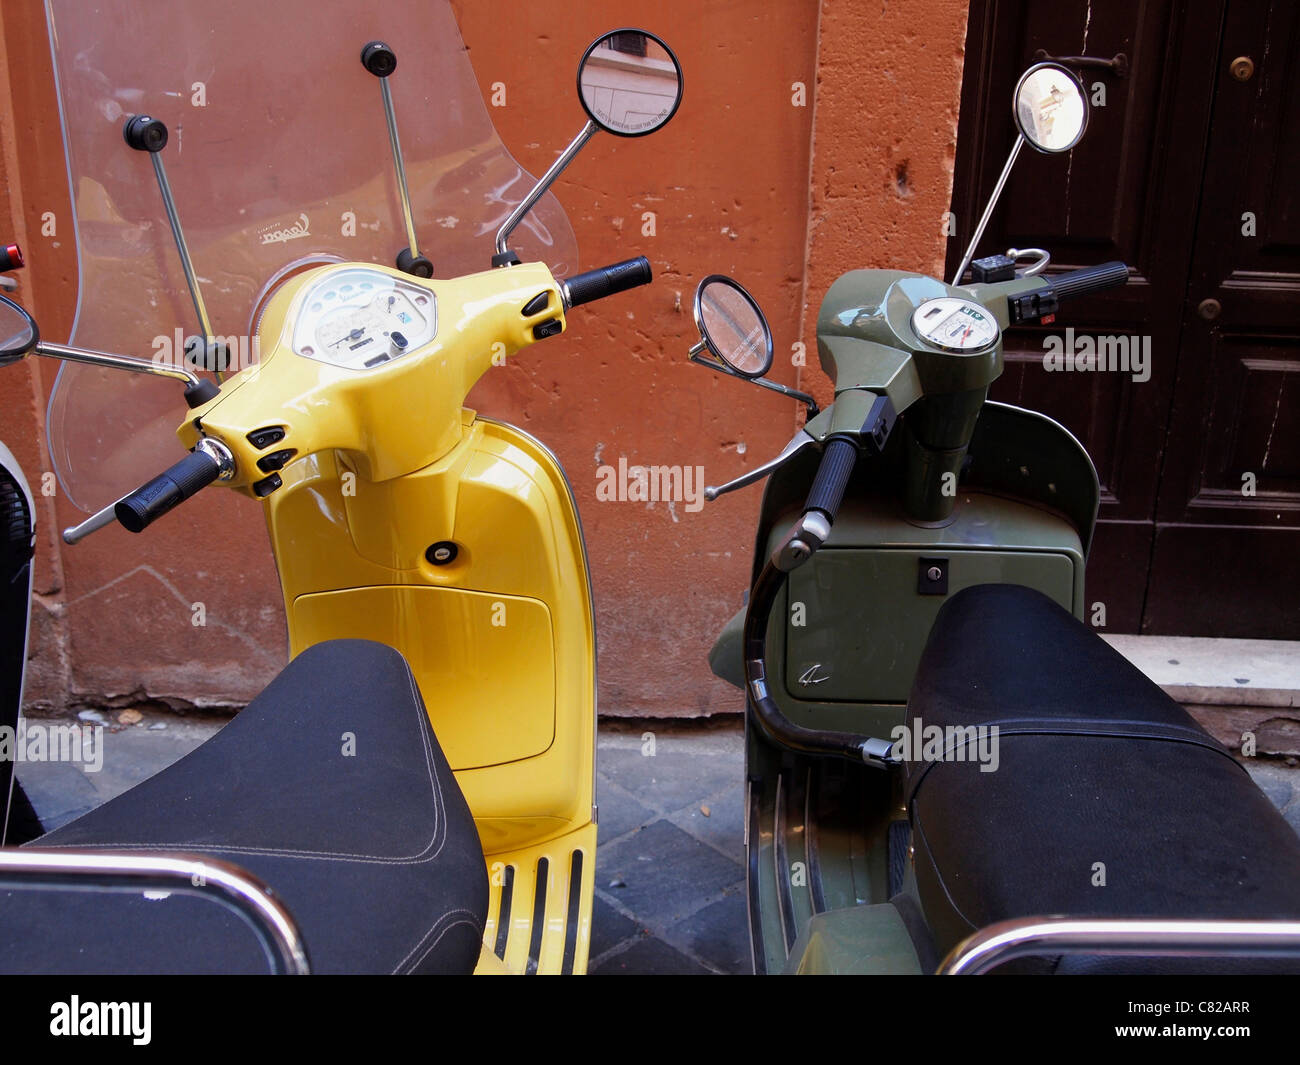 Motor scooters / vespas in the centre of Rome, Italy - Stock Image